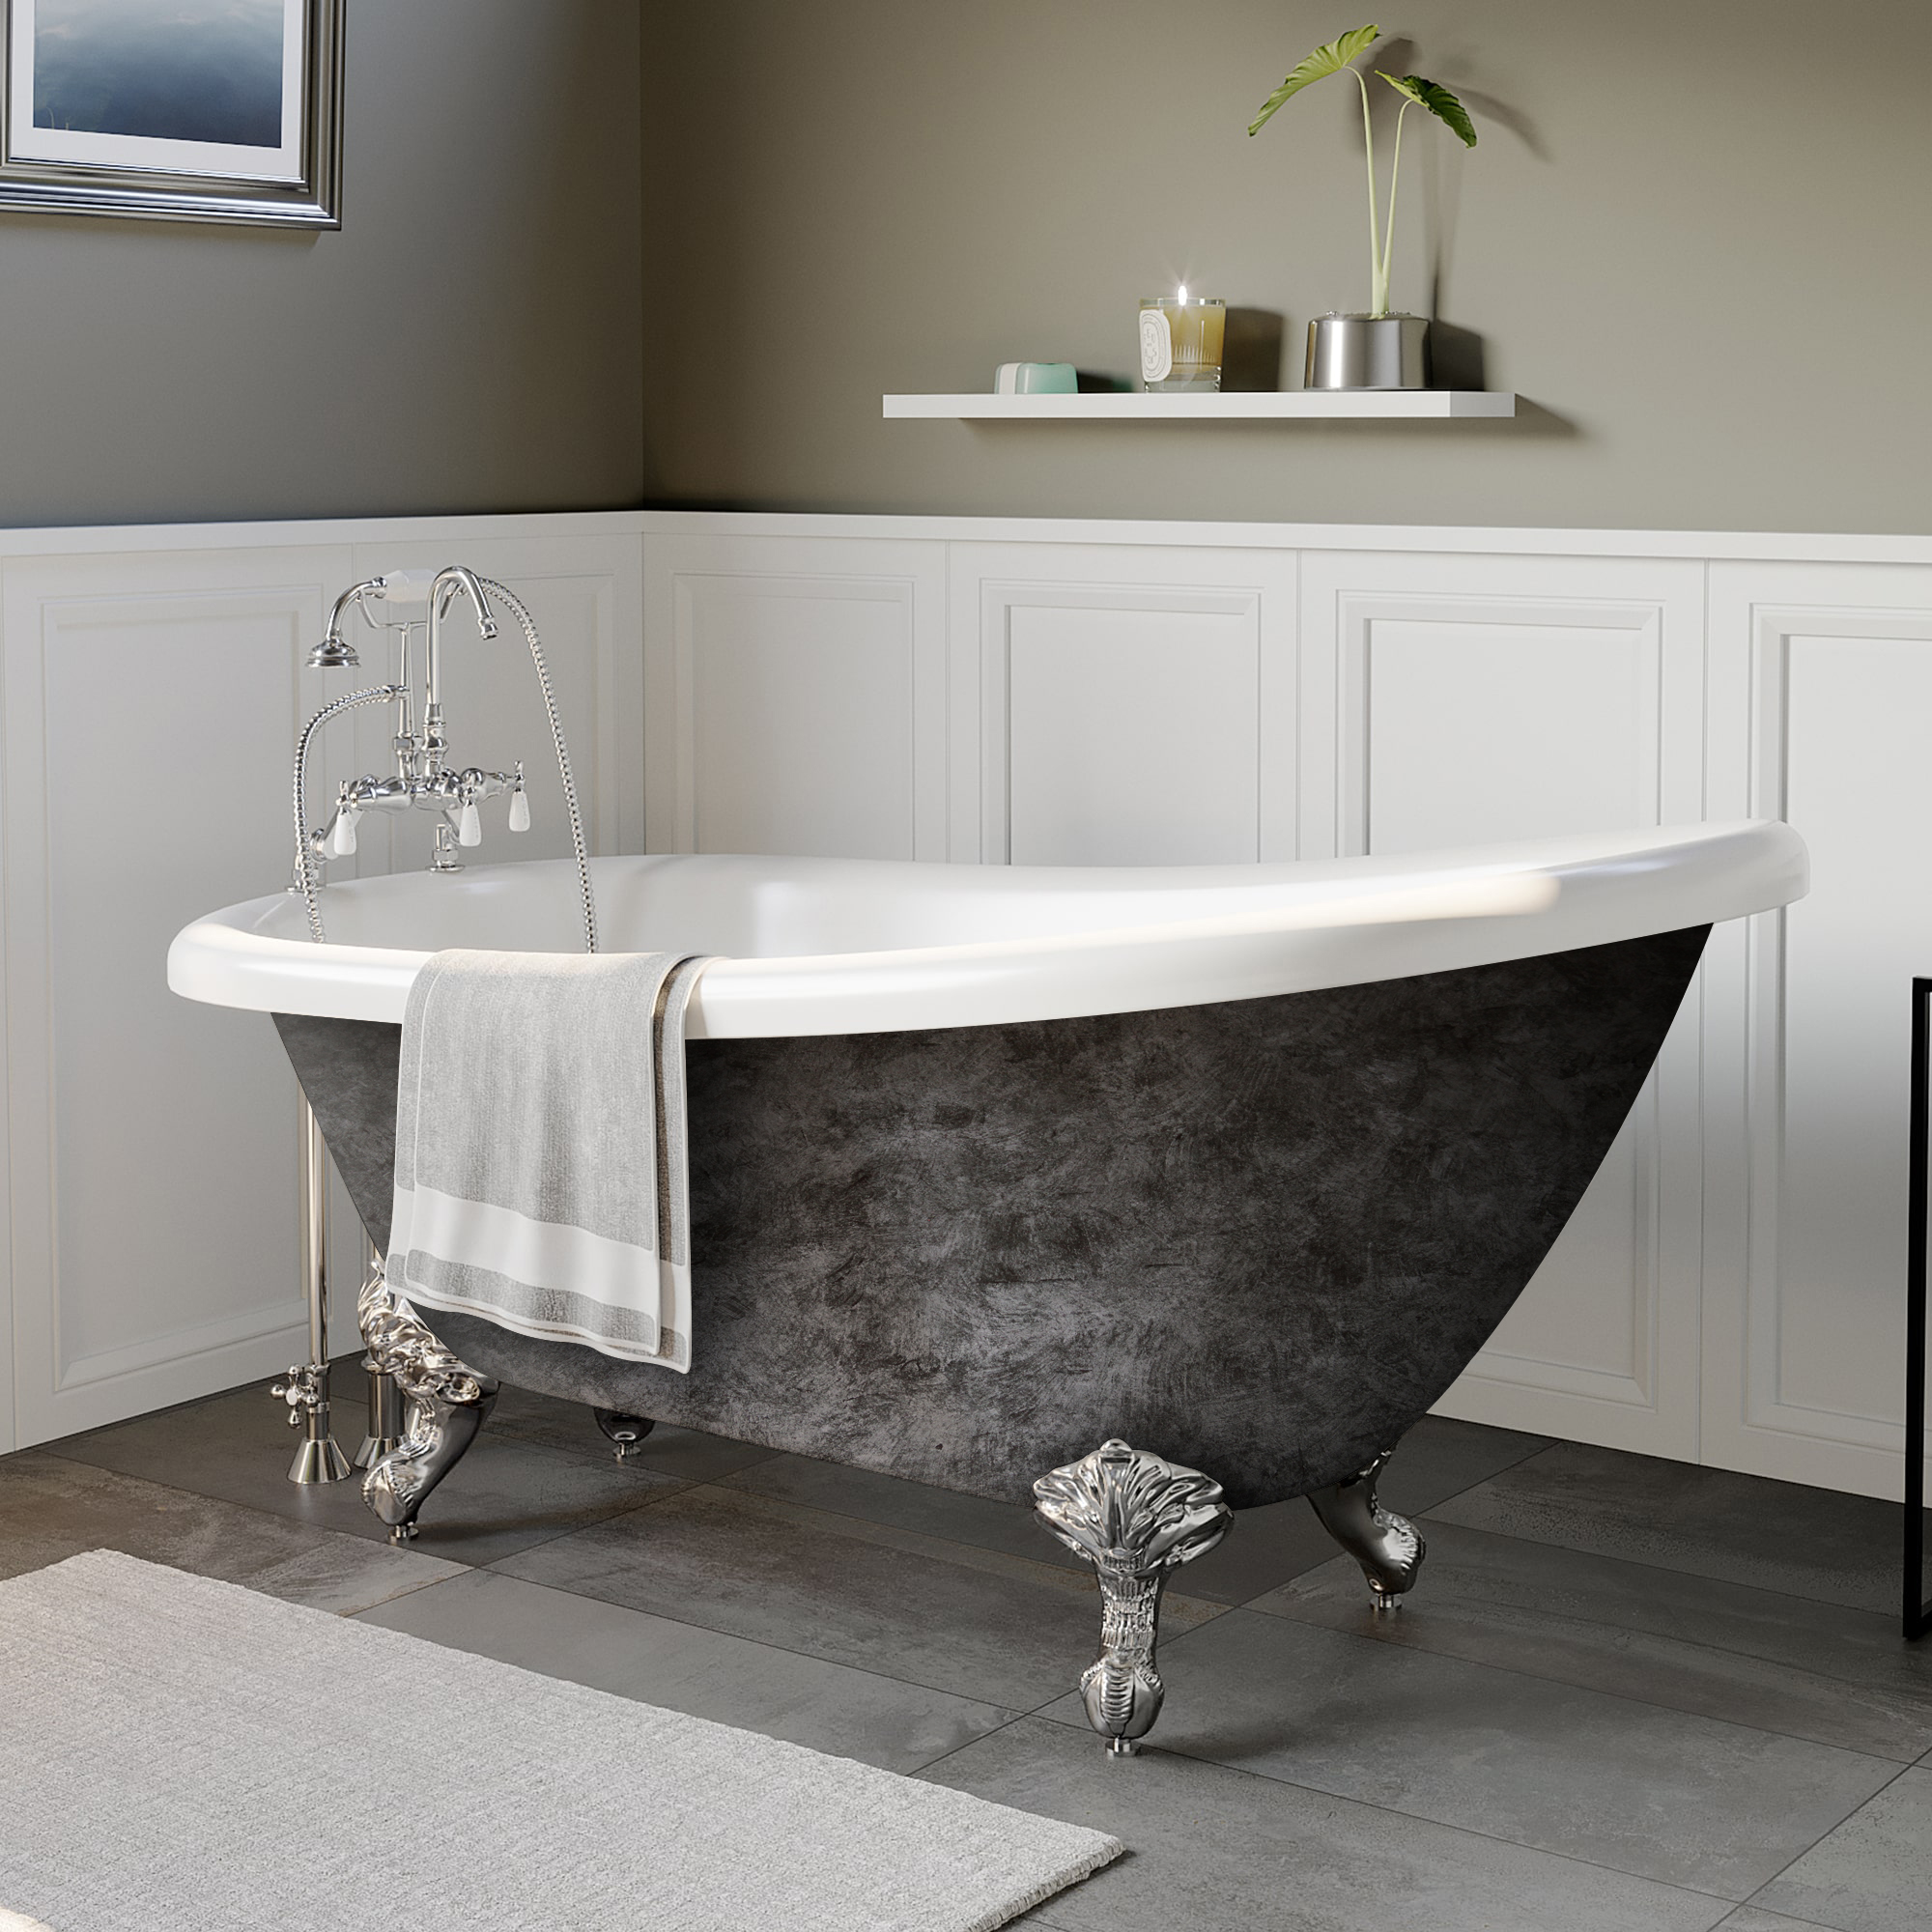 """Cambridge Scorched Platinum 61"""" x 28"""" Acrylic Slipper Bathtub with """"7"""" Deck Mount Faucet Holes and Polished Chrome Ball and Claw Feet"""